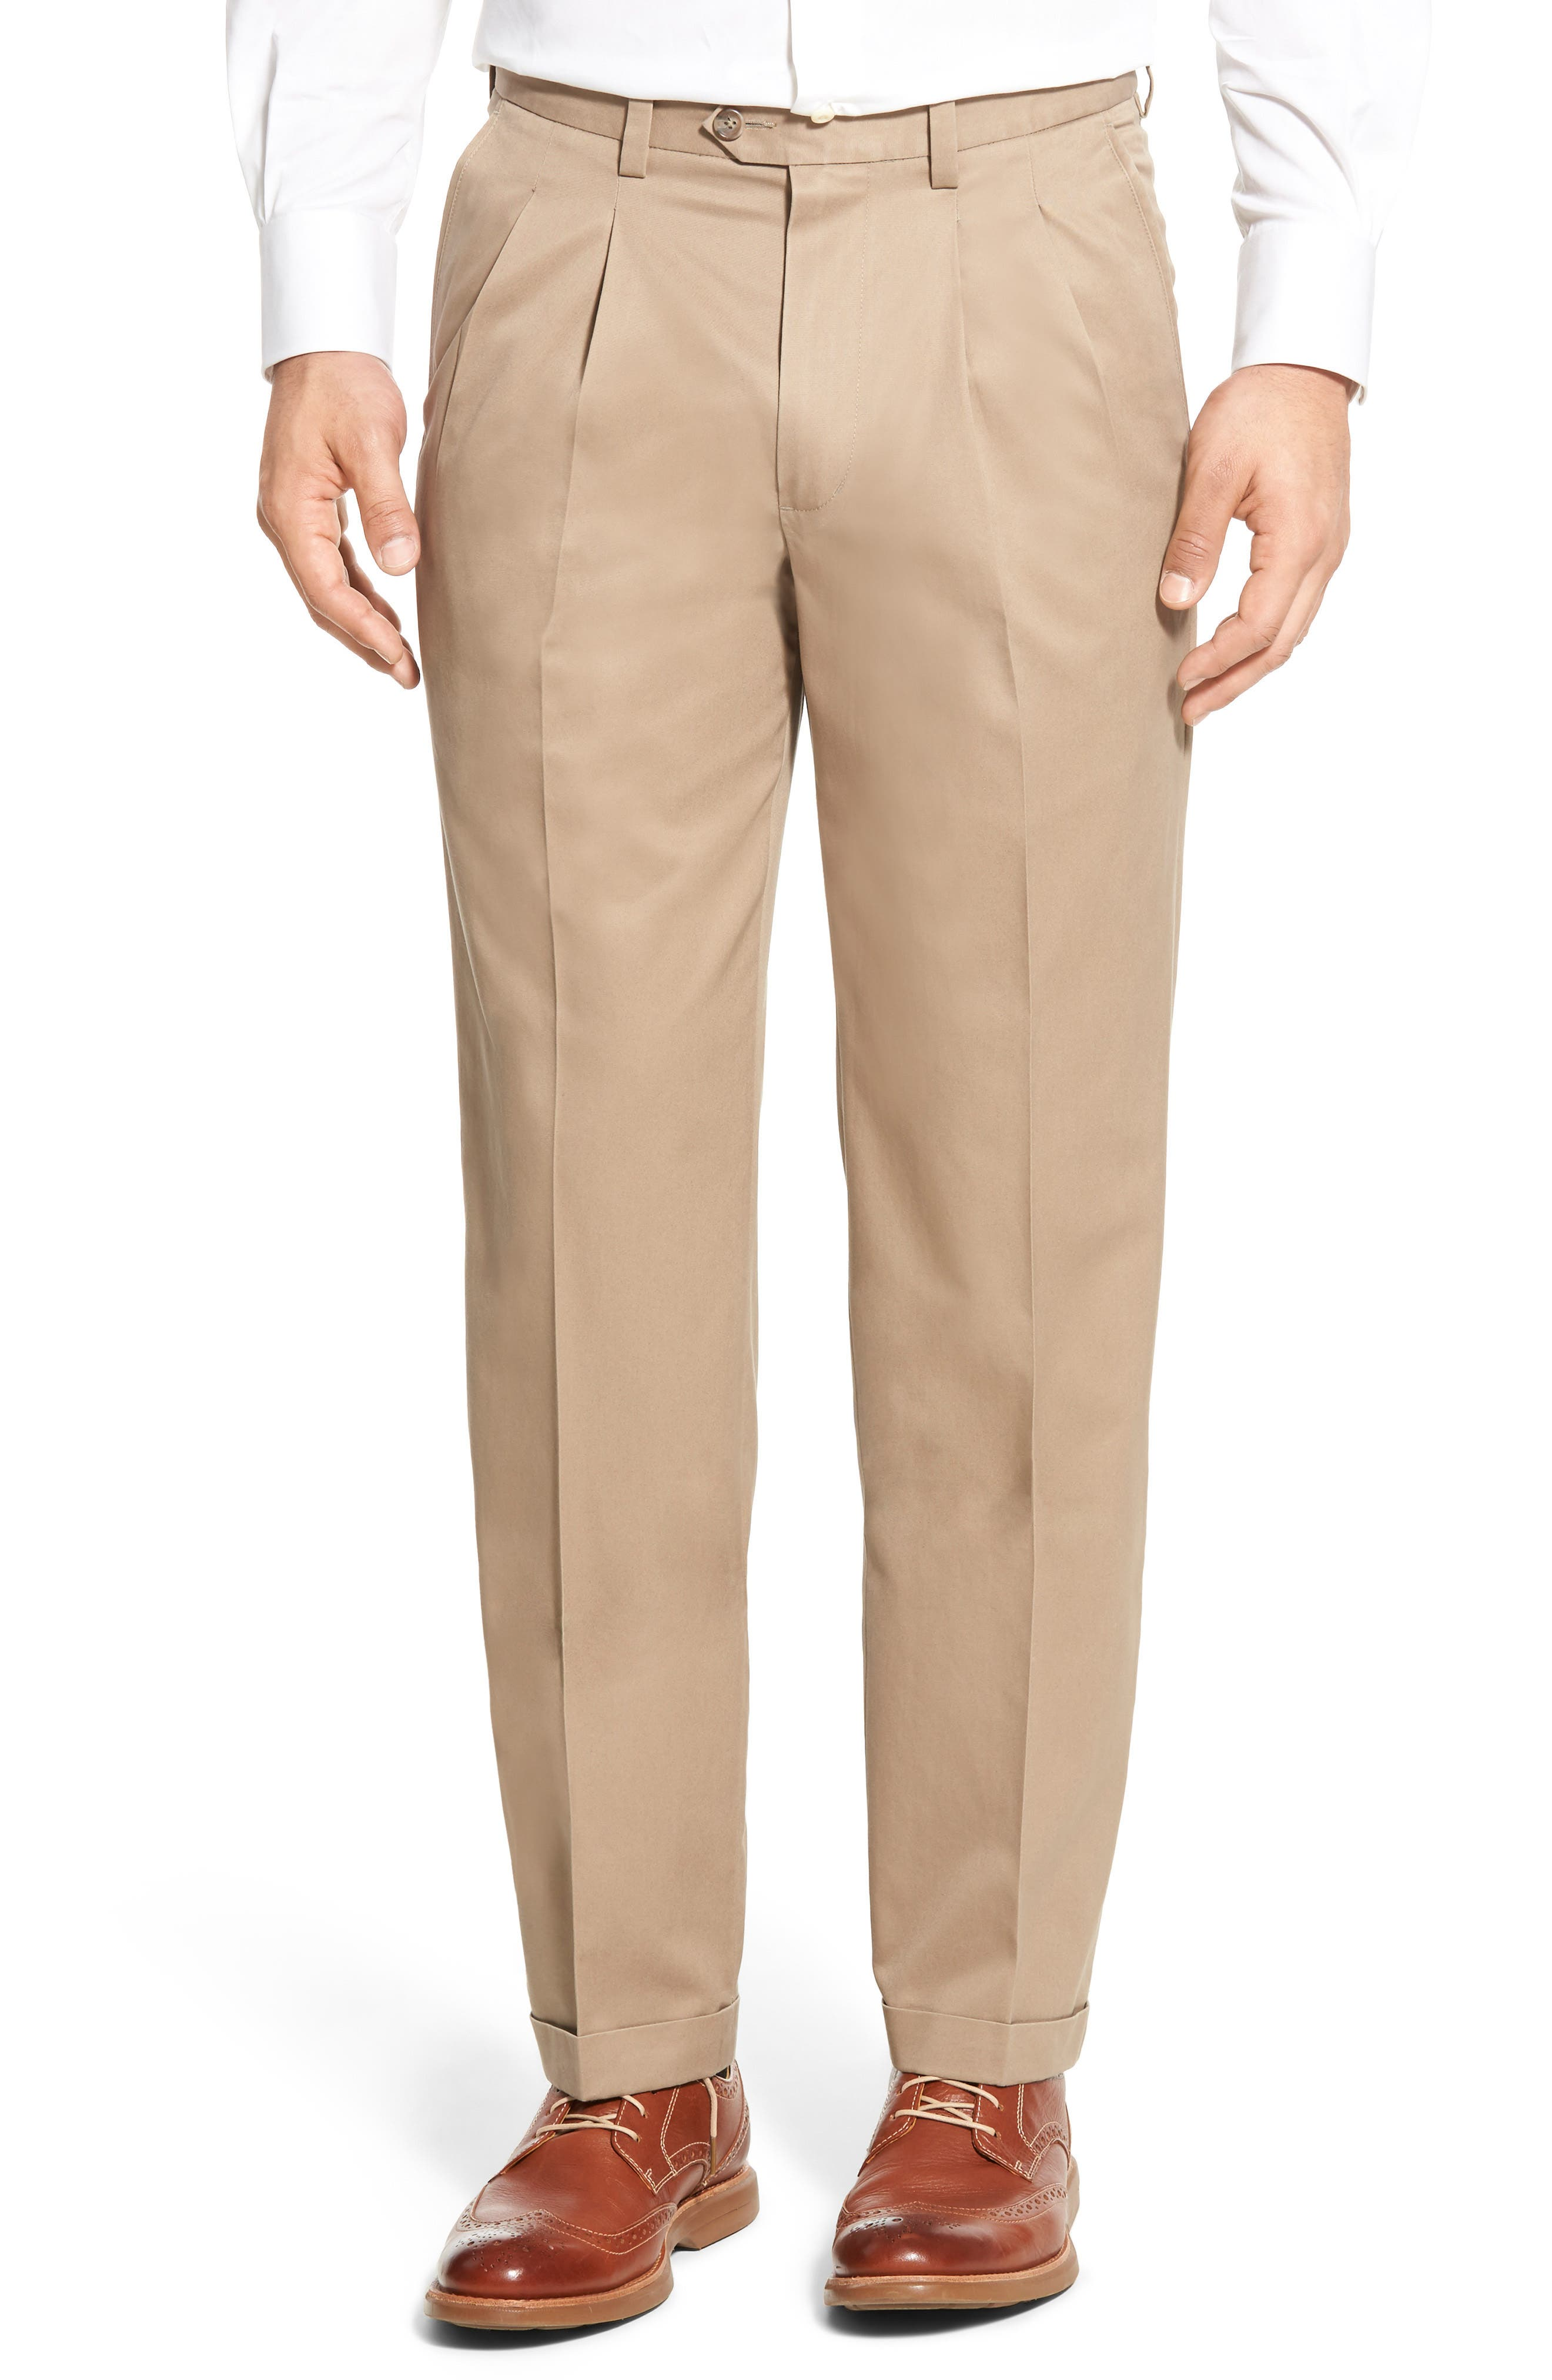 menswear style 31 waist white Red and tan light weight plaid dress pants blue